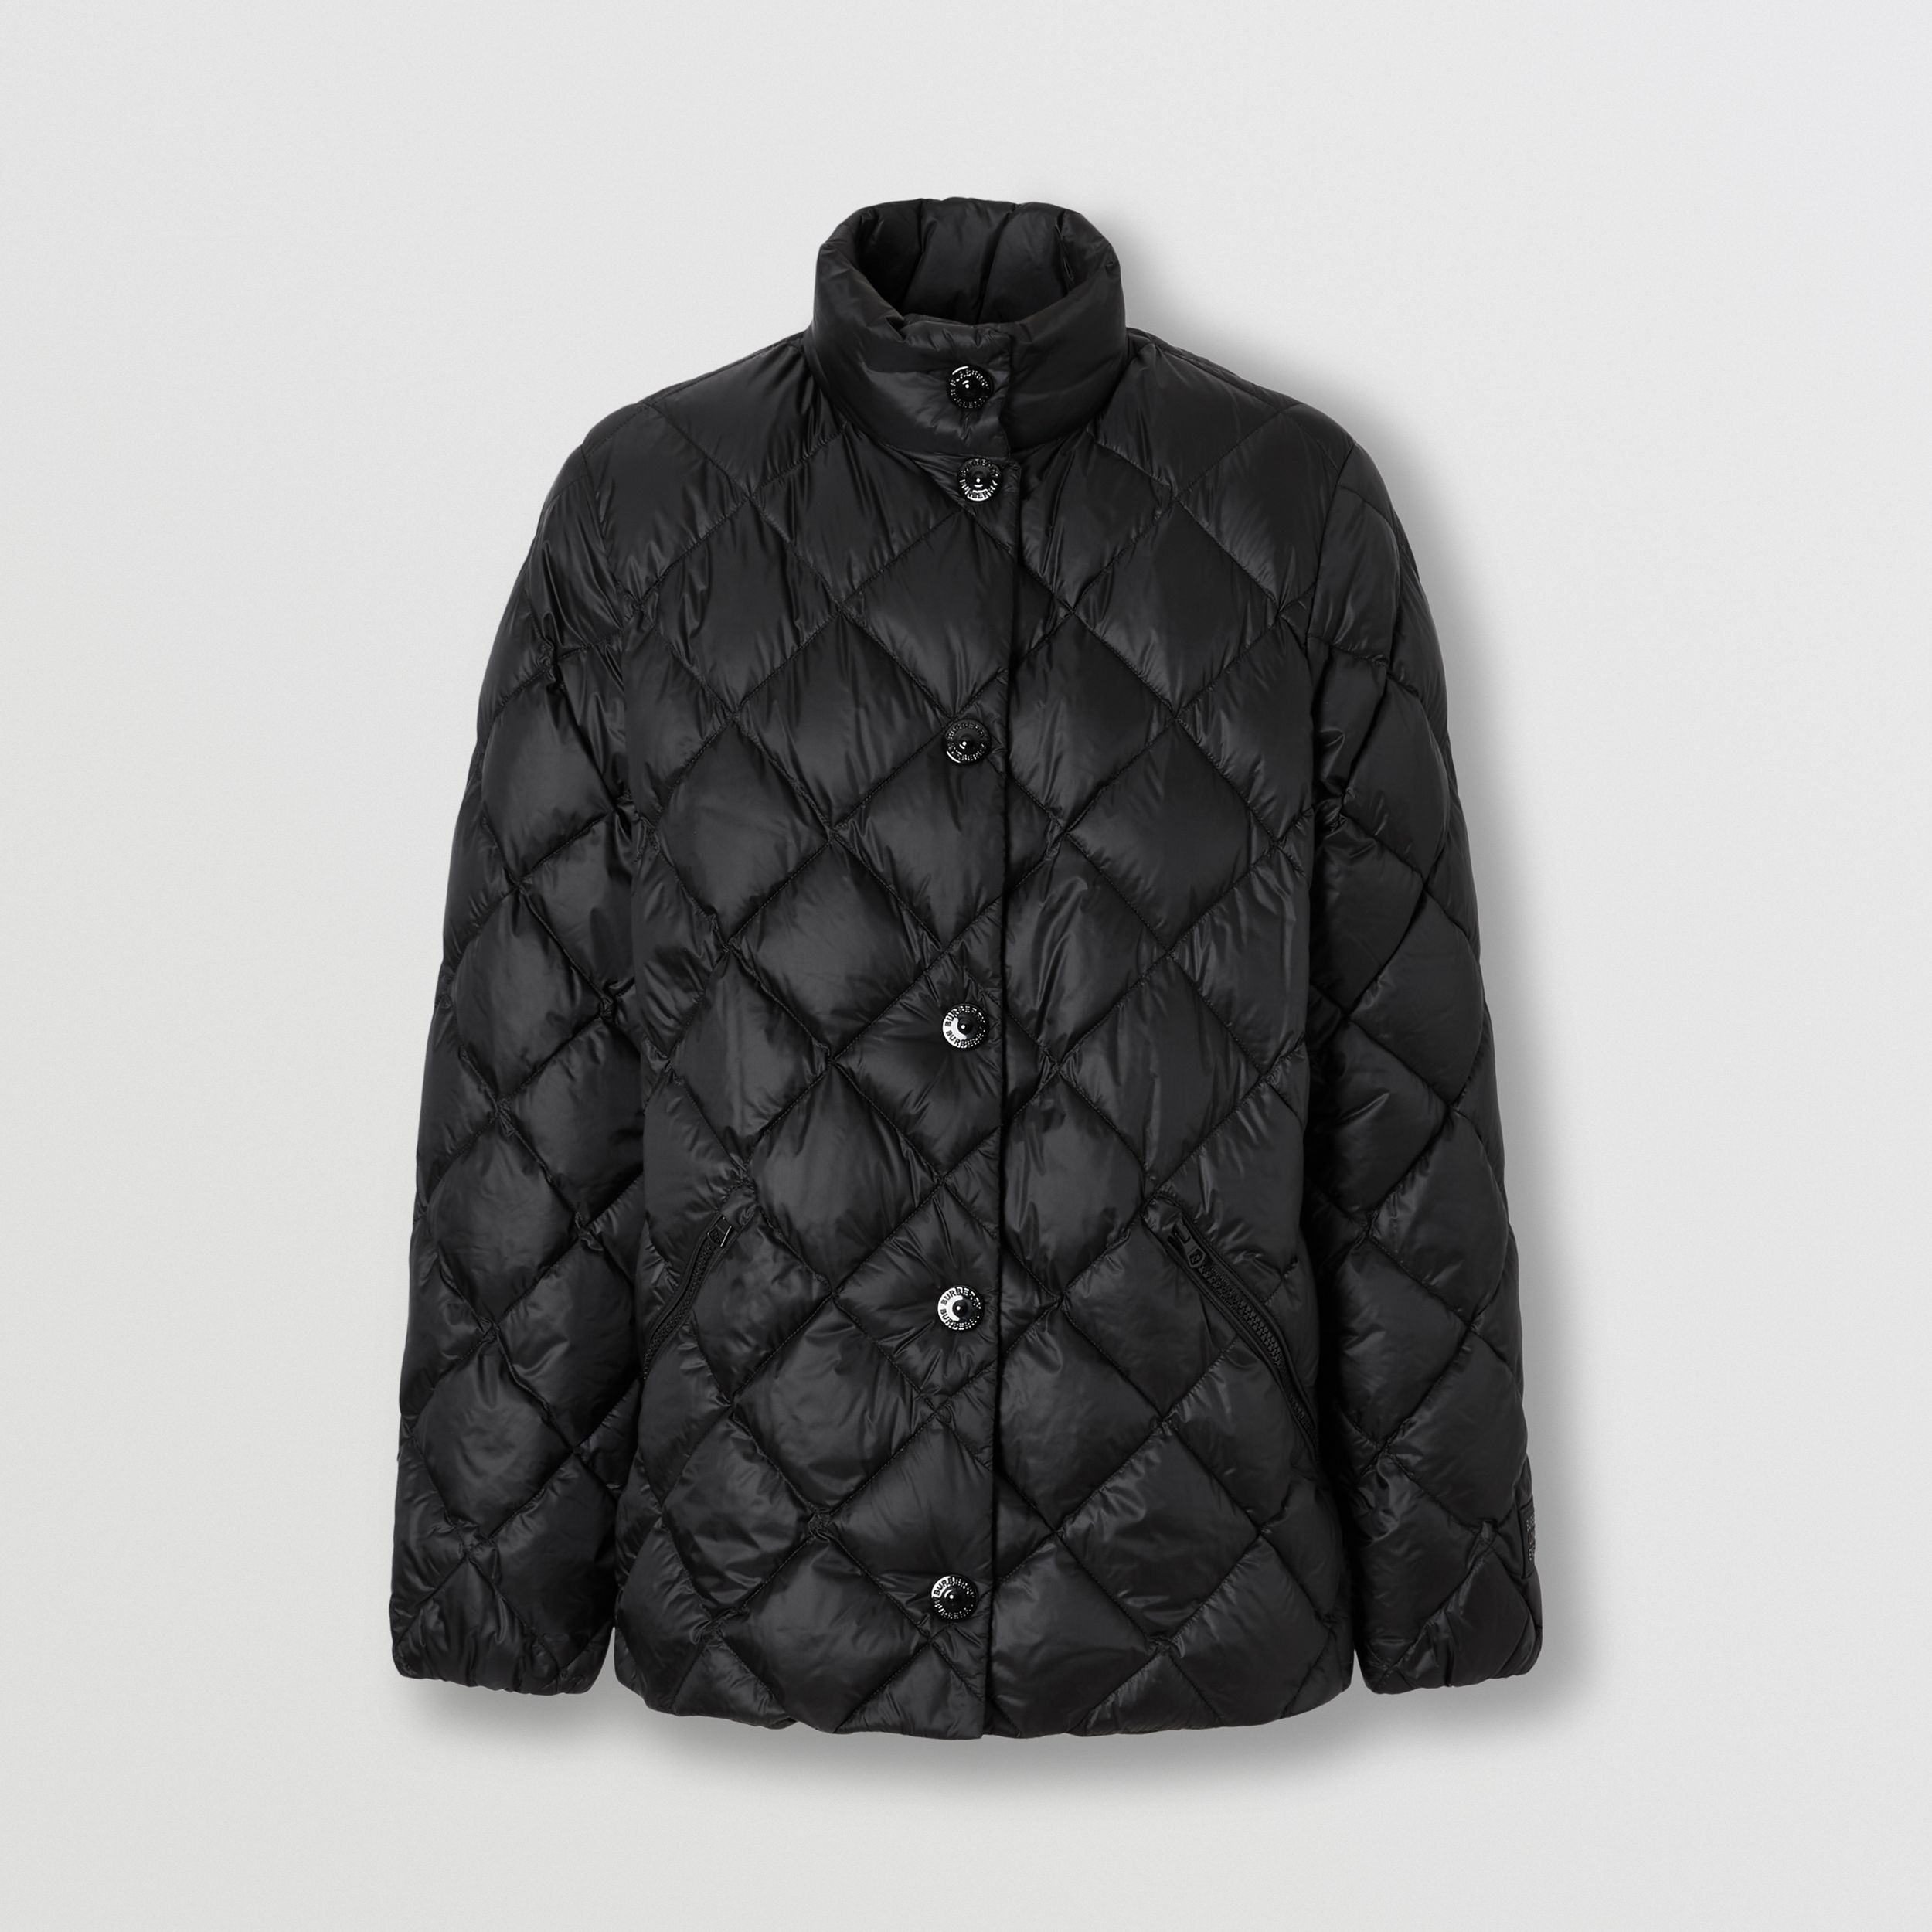 Diamond Quilted Down-filled Jacket in Black - Women | Burberry Australia - 4